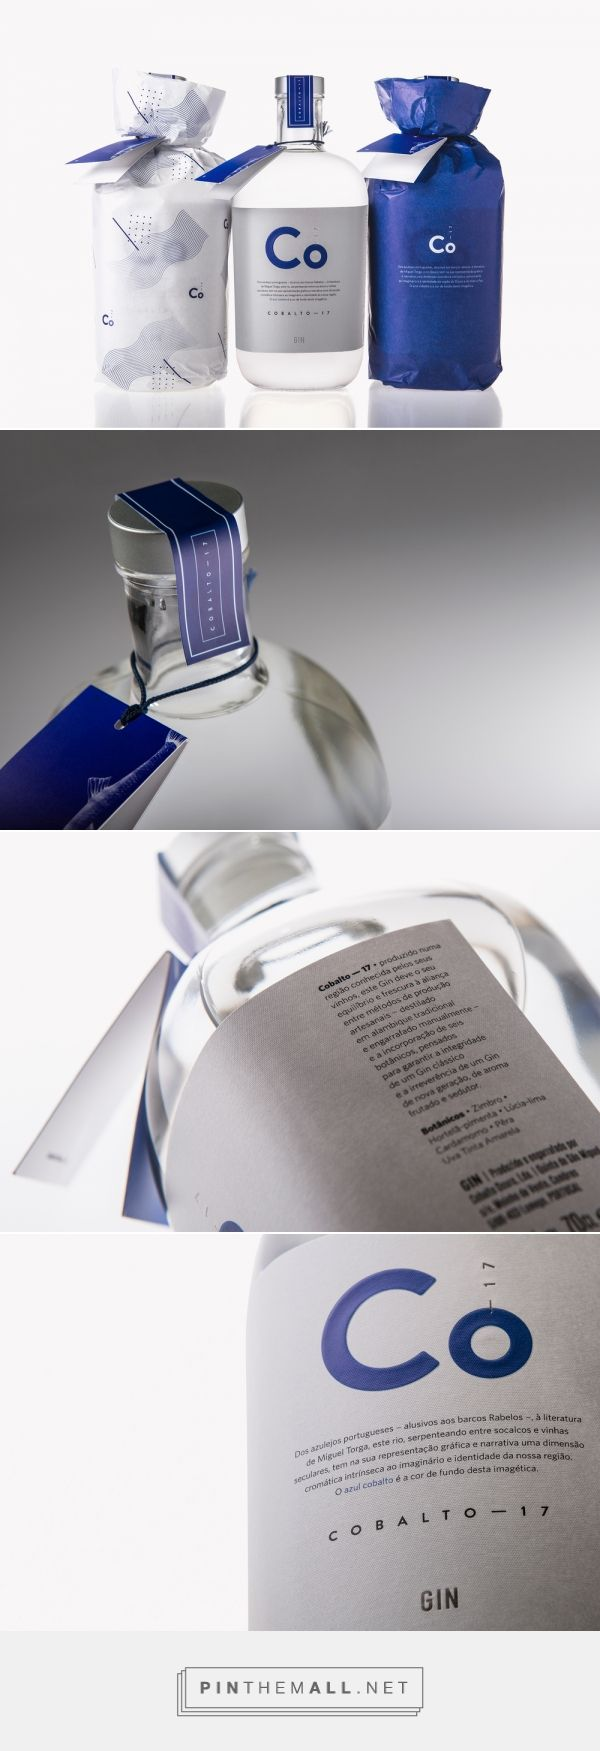 Cobalto-17 via The Dieline - Branding & Packaging Curated by Packaging Diva PD. From the Douro region, usually known for its wines. With packaging designed by Koiástudio, this Portuguese gin takes a crisp and refreshing approach.